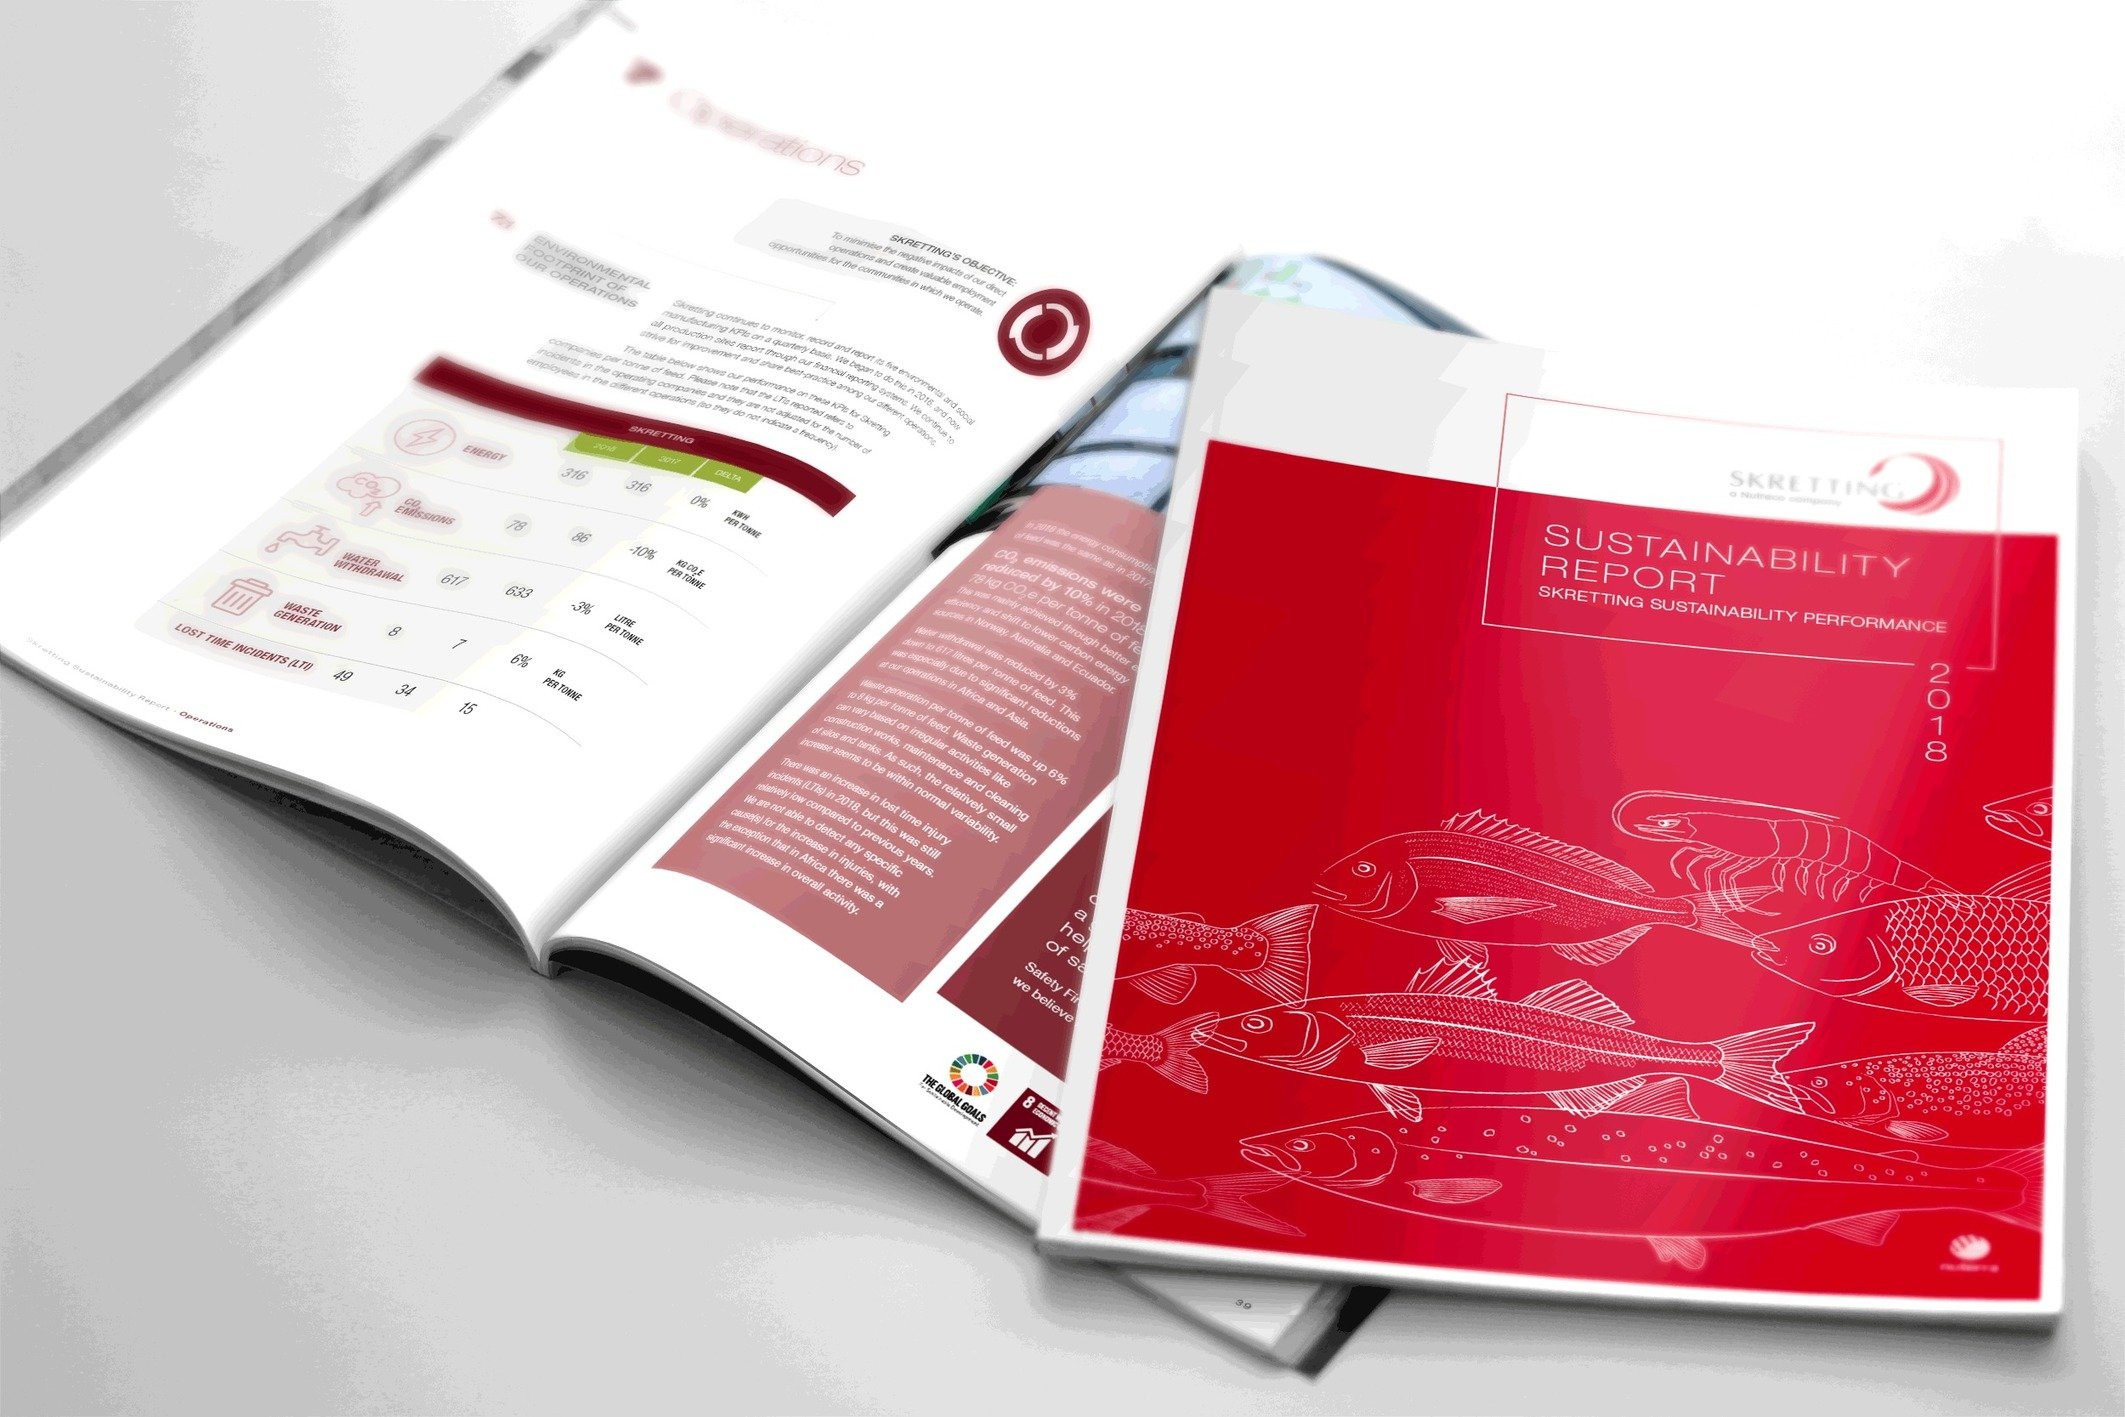 Skretting Sustainability Report highlights wins and challenges in 2018, The Circular Economy